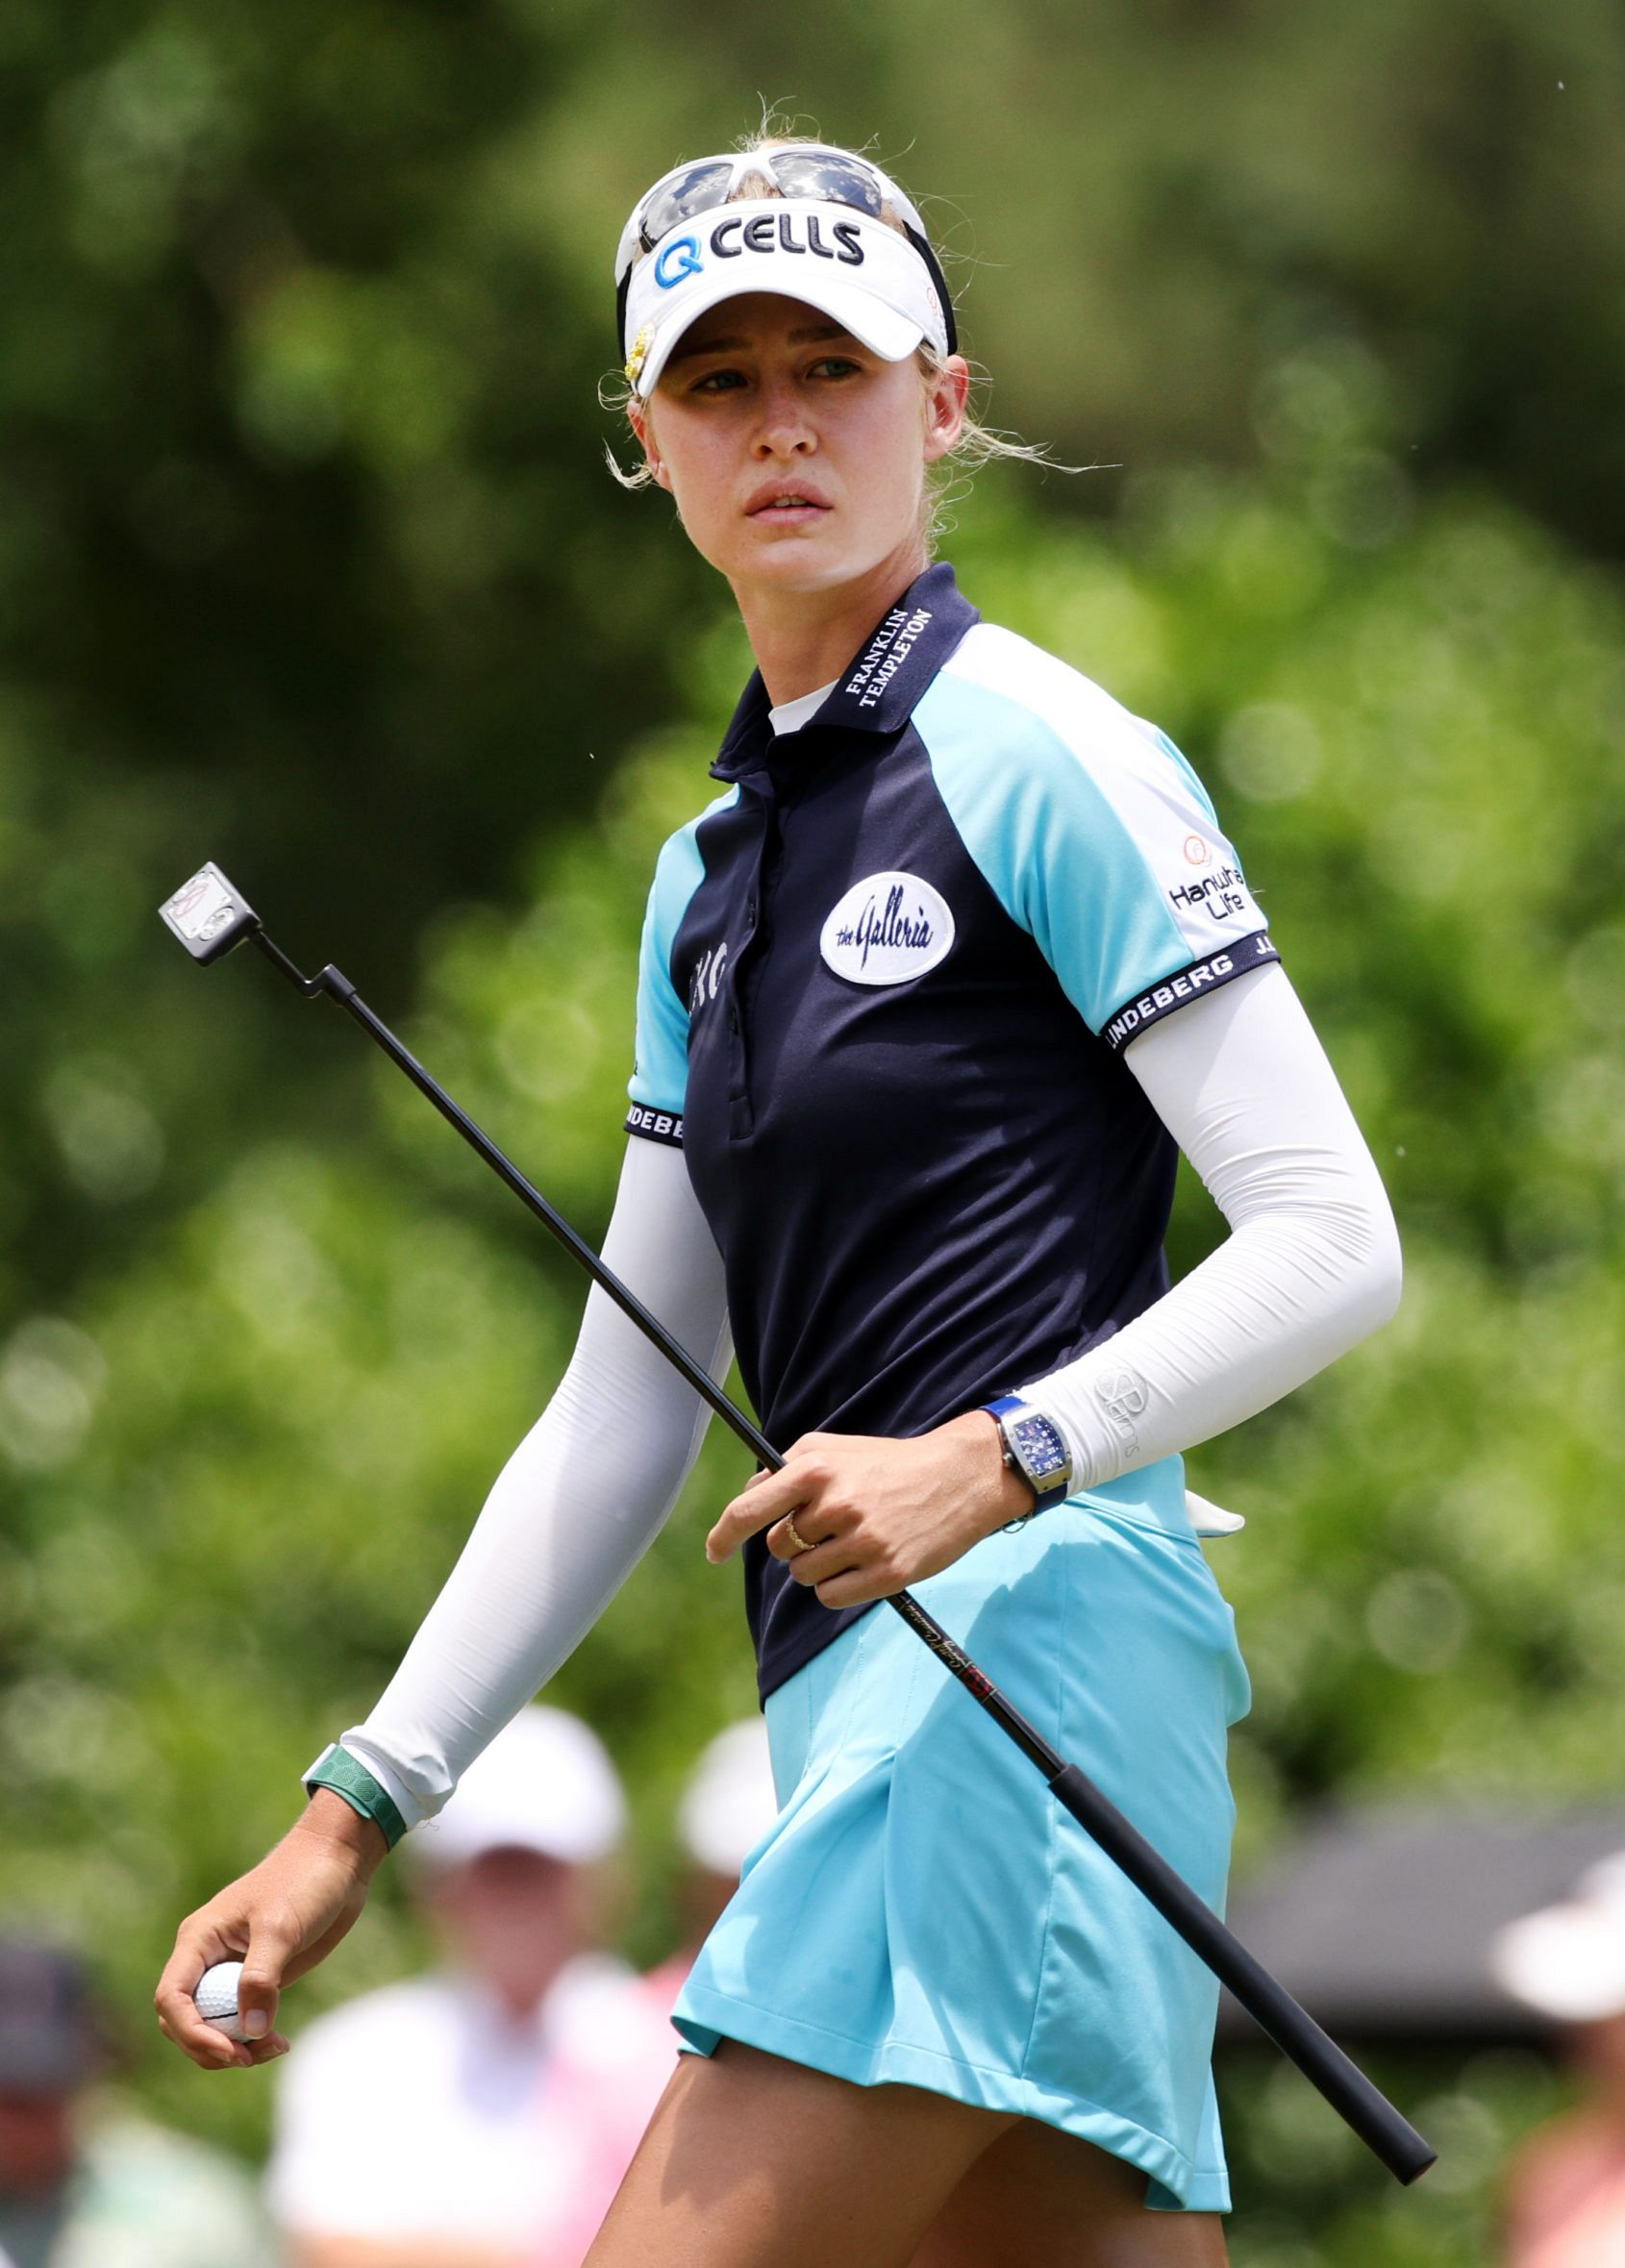 US golfer Nelly Korda rises to world #1 while wearing her Richard Mille RM 007